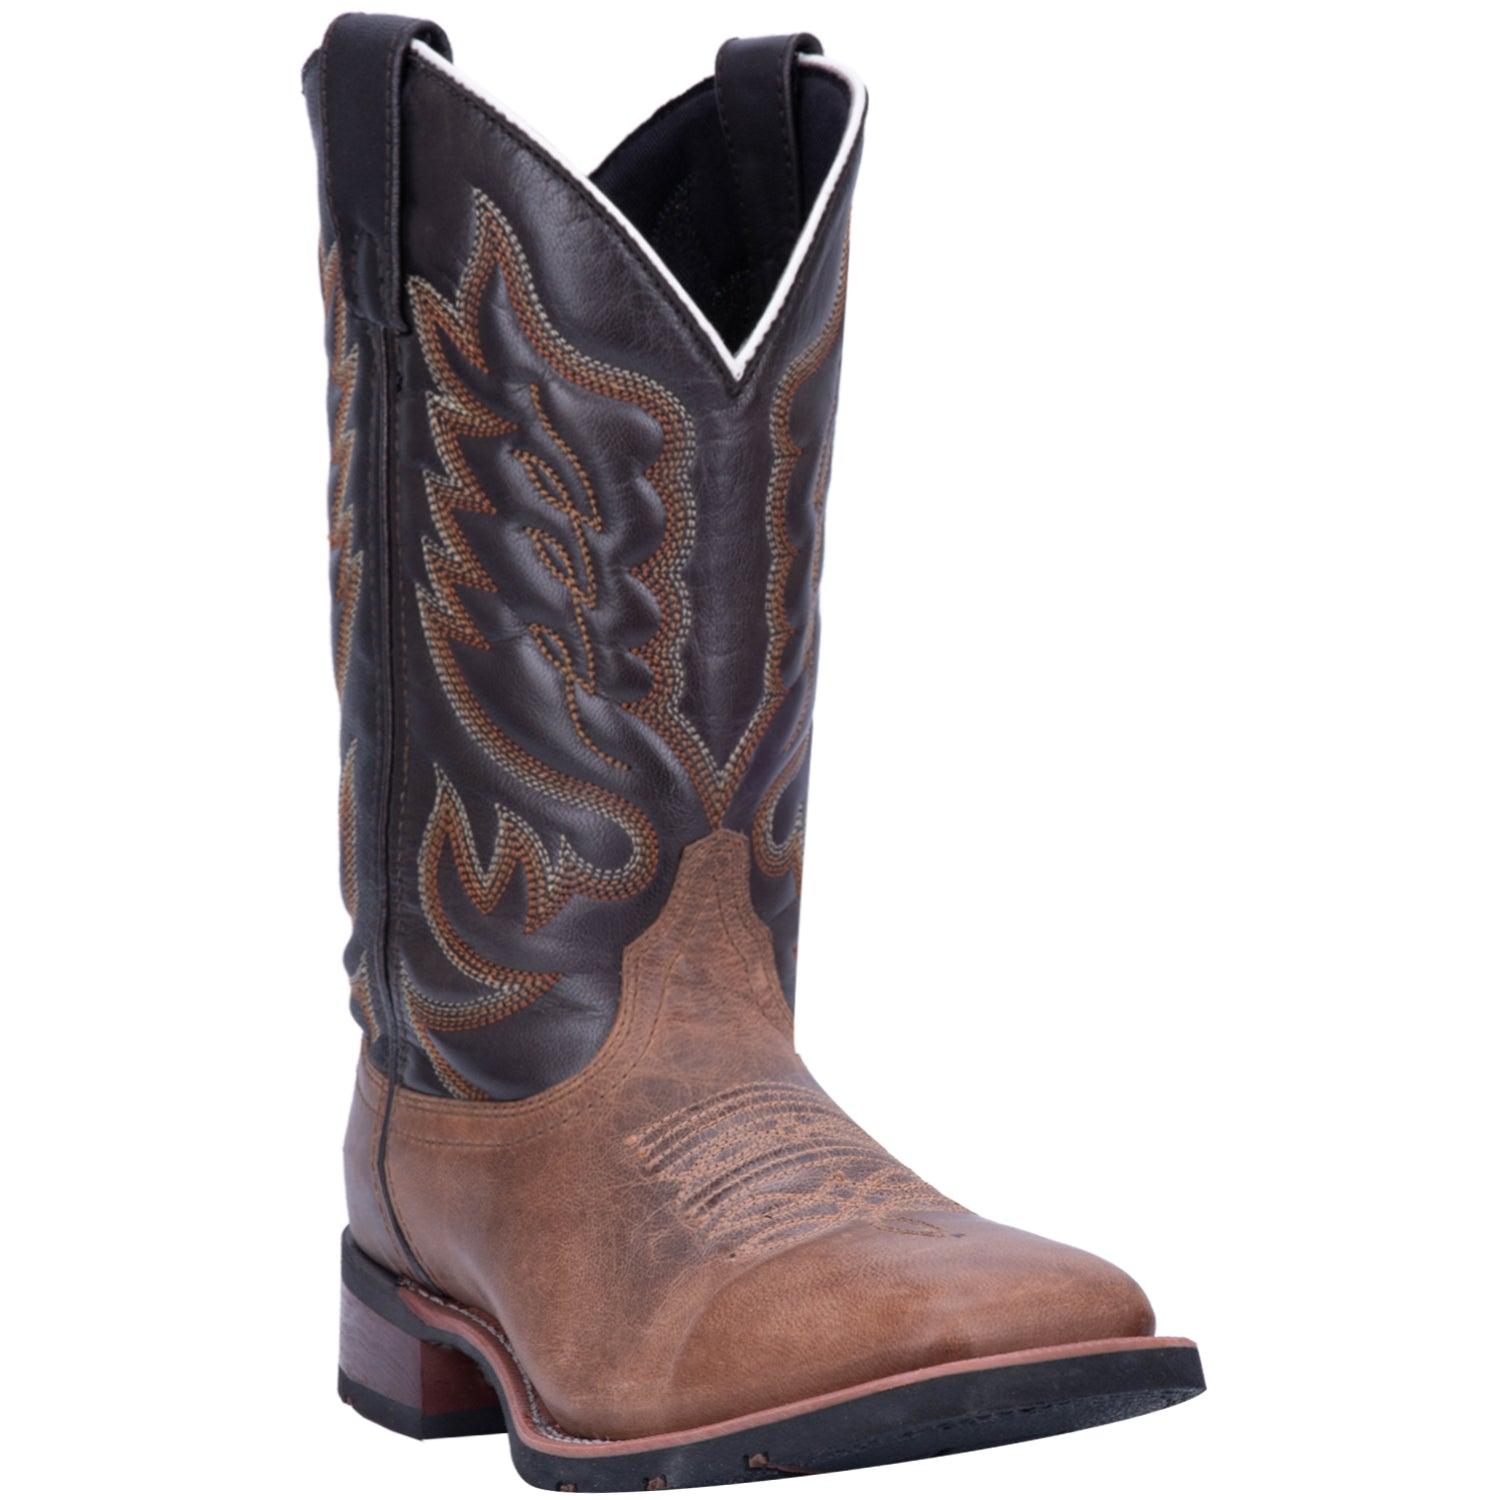 MONTANA LEATHER BOOT